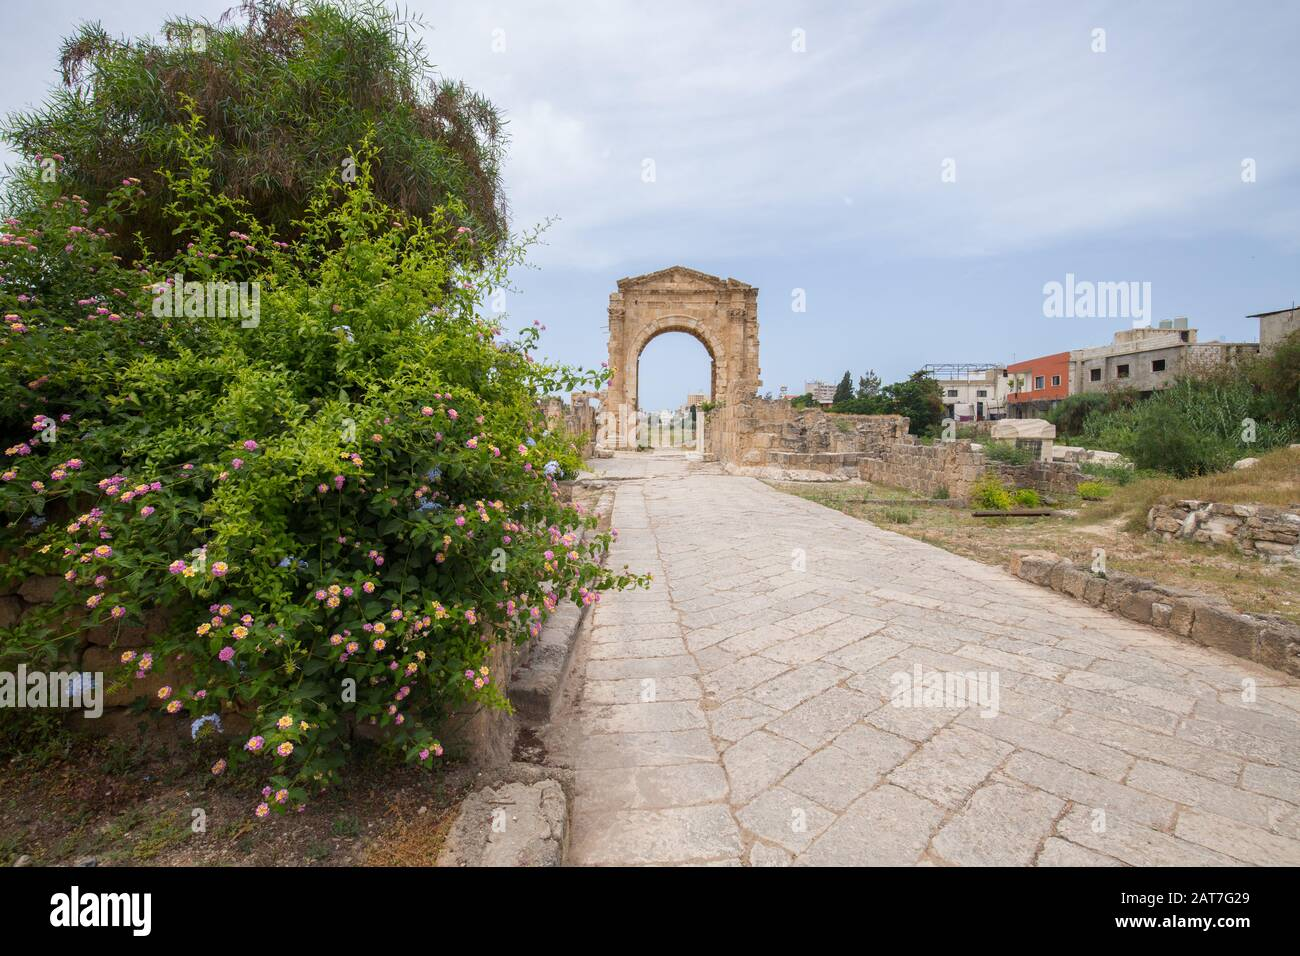 The arch of triumph and the Byzantine road. Roman remains in Tyre. Tyre is an ancient Phoenician city. Tyre, Lebanon - June, 2019 Stock Photo